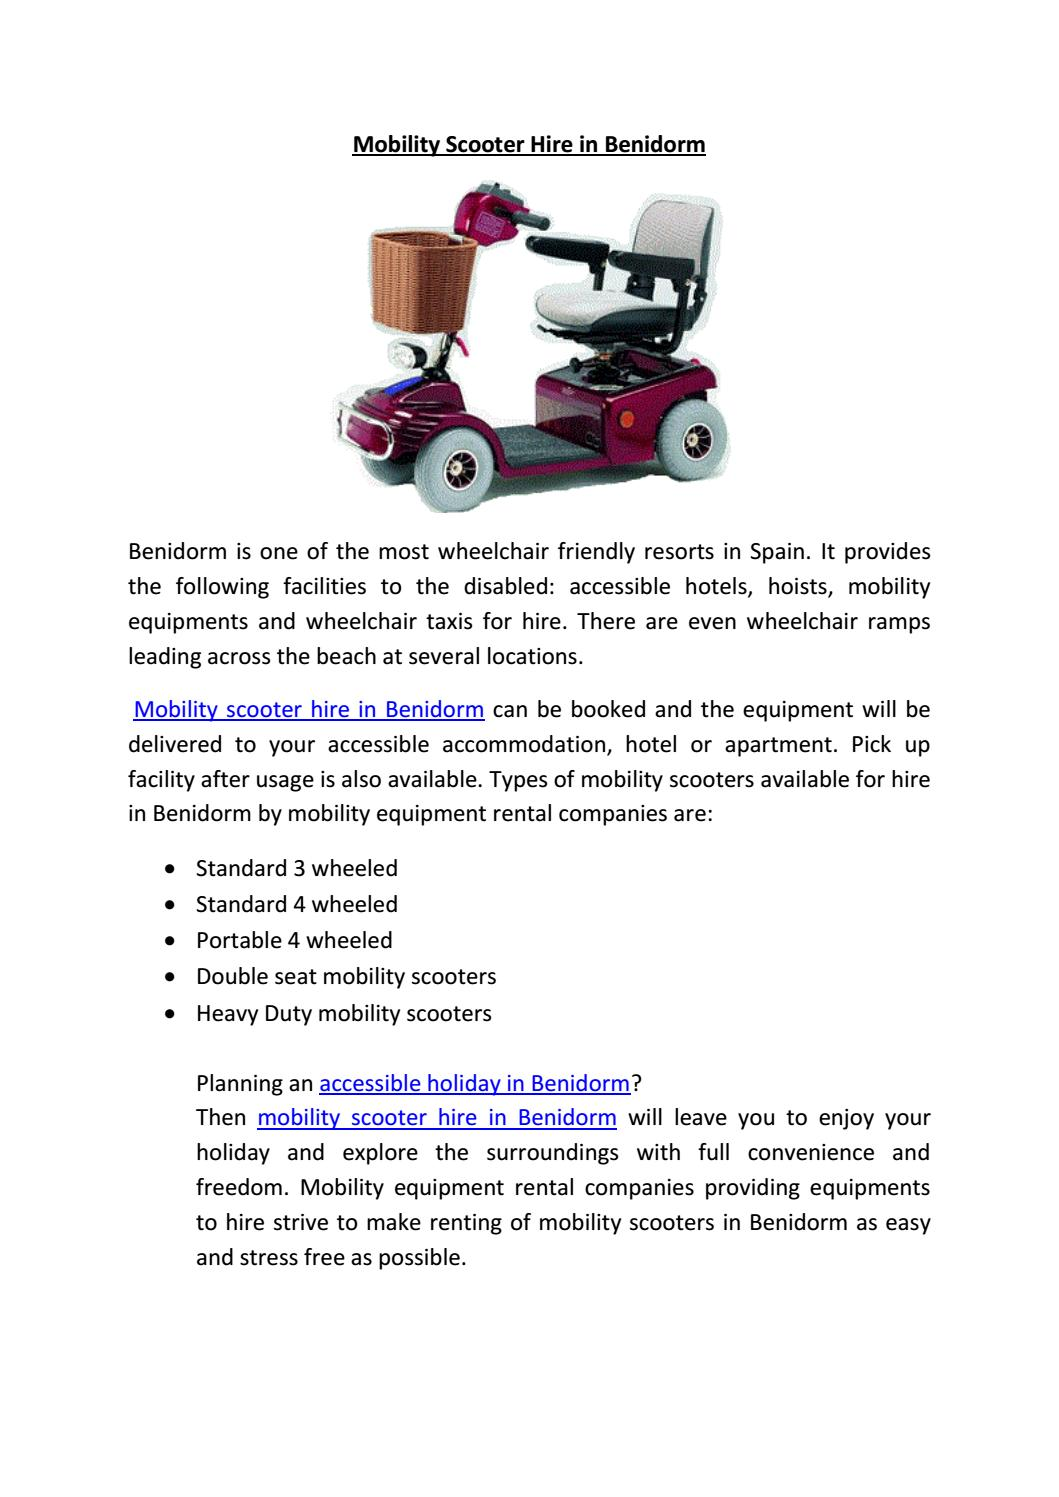 Mobility scooter hire in benidorm by Mobility Equipments